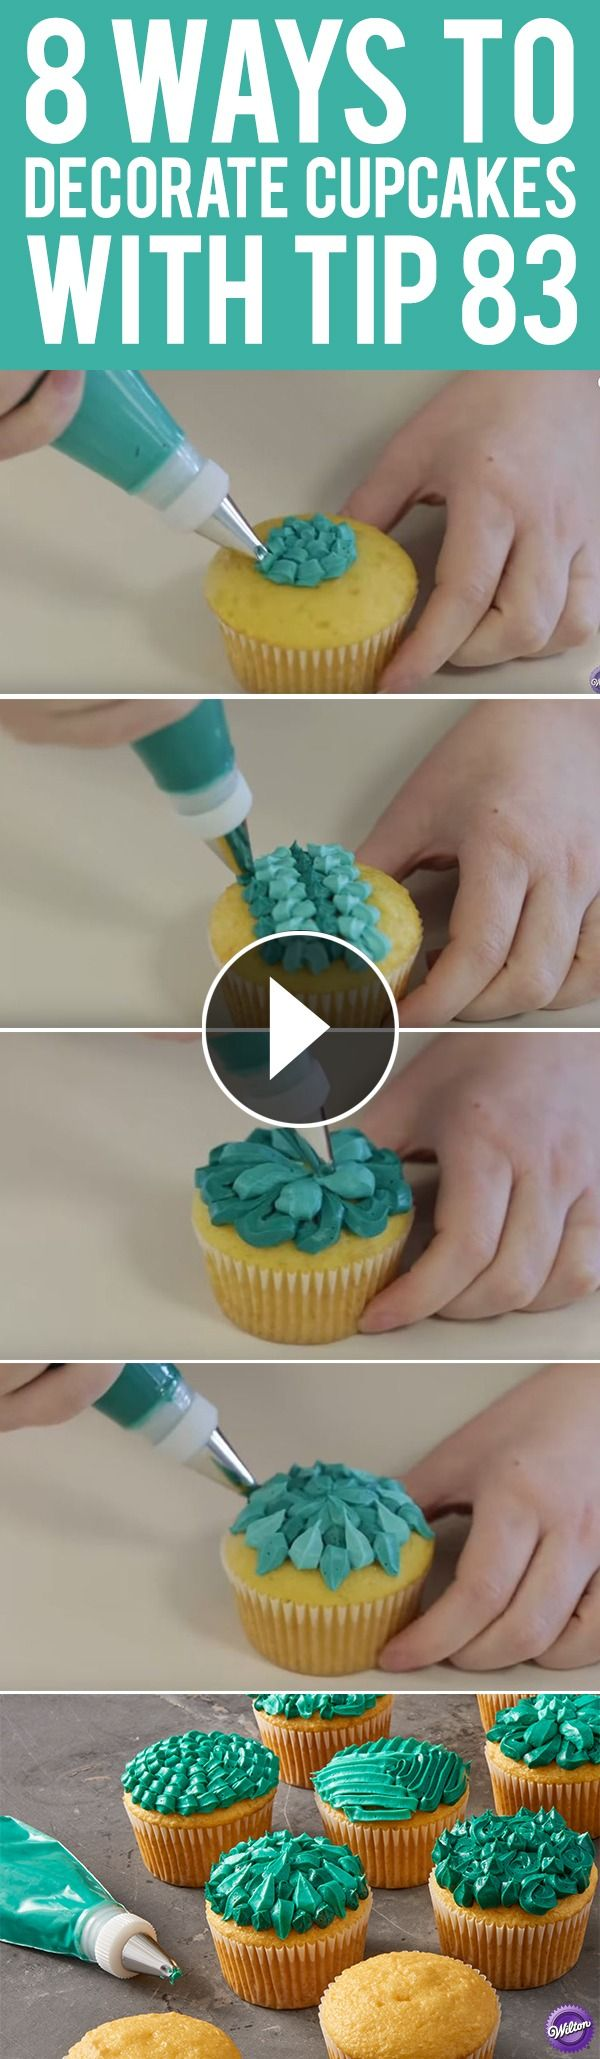 "Learn how to decorate cupcakes using the Wilton specialty piping tip 83. Commonly used to pipe little ""X"" shapes, this decorating tip can also be used to pipe everything from shells to zig-zags. Up your cupcake decorating game with these eight fun and clever ways to use decorating tip 83!"